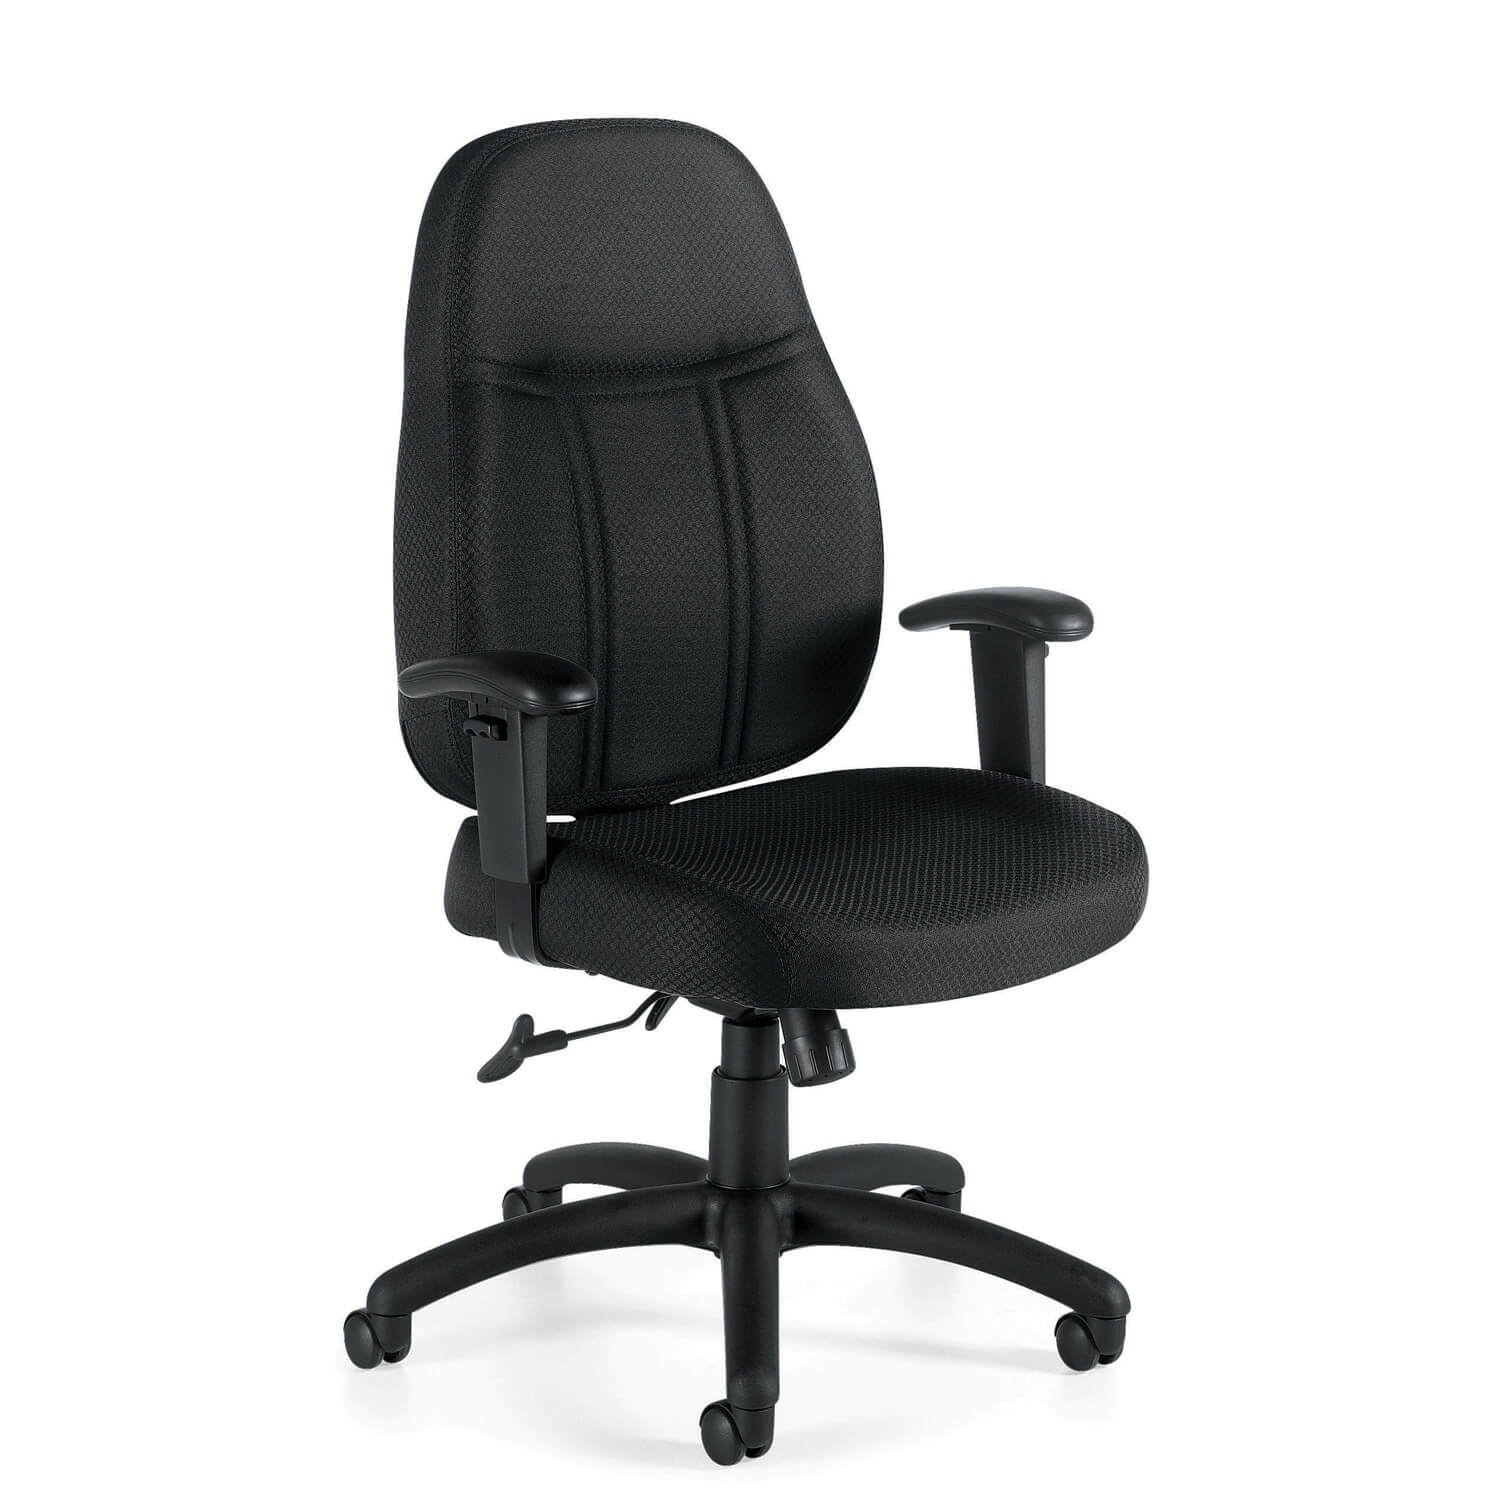 Jasonni Adjustable Office Chairs